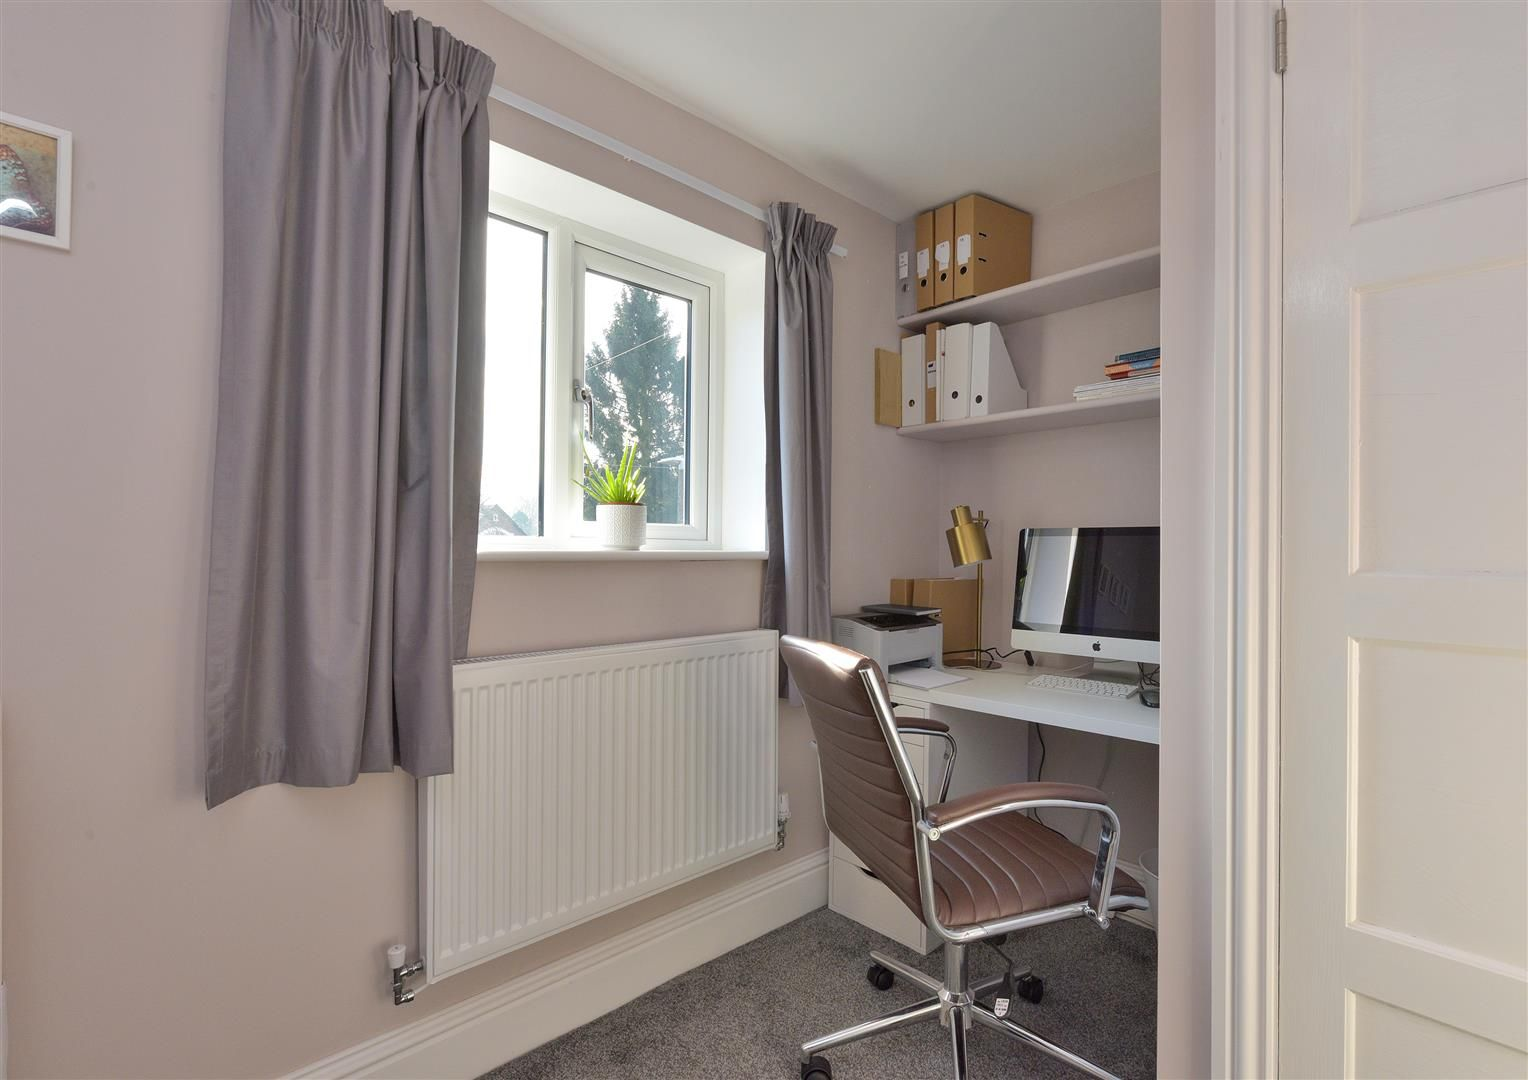 3 bed house for sale in Clent 17